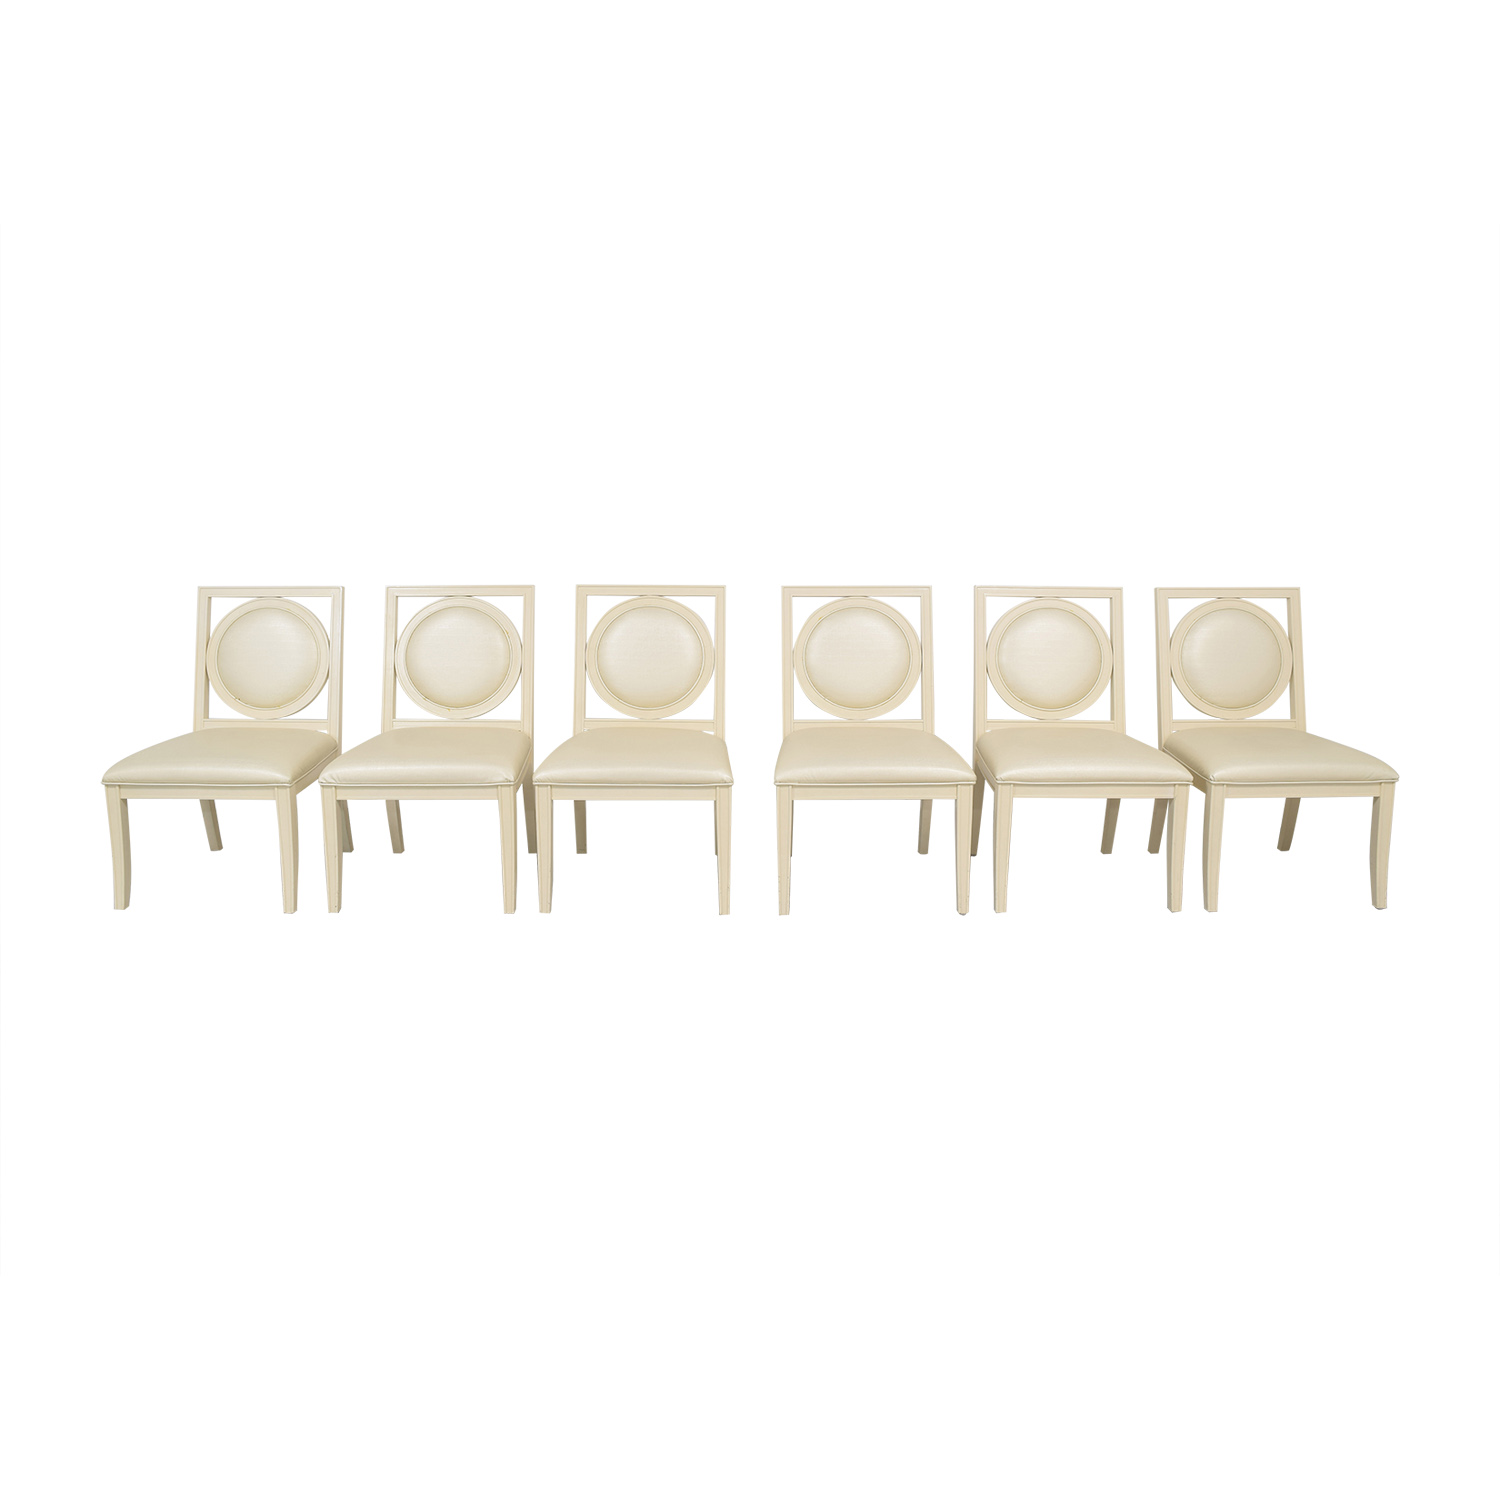 Bernhardt Bernhardt Dining Chairs coupon